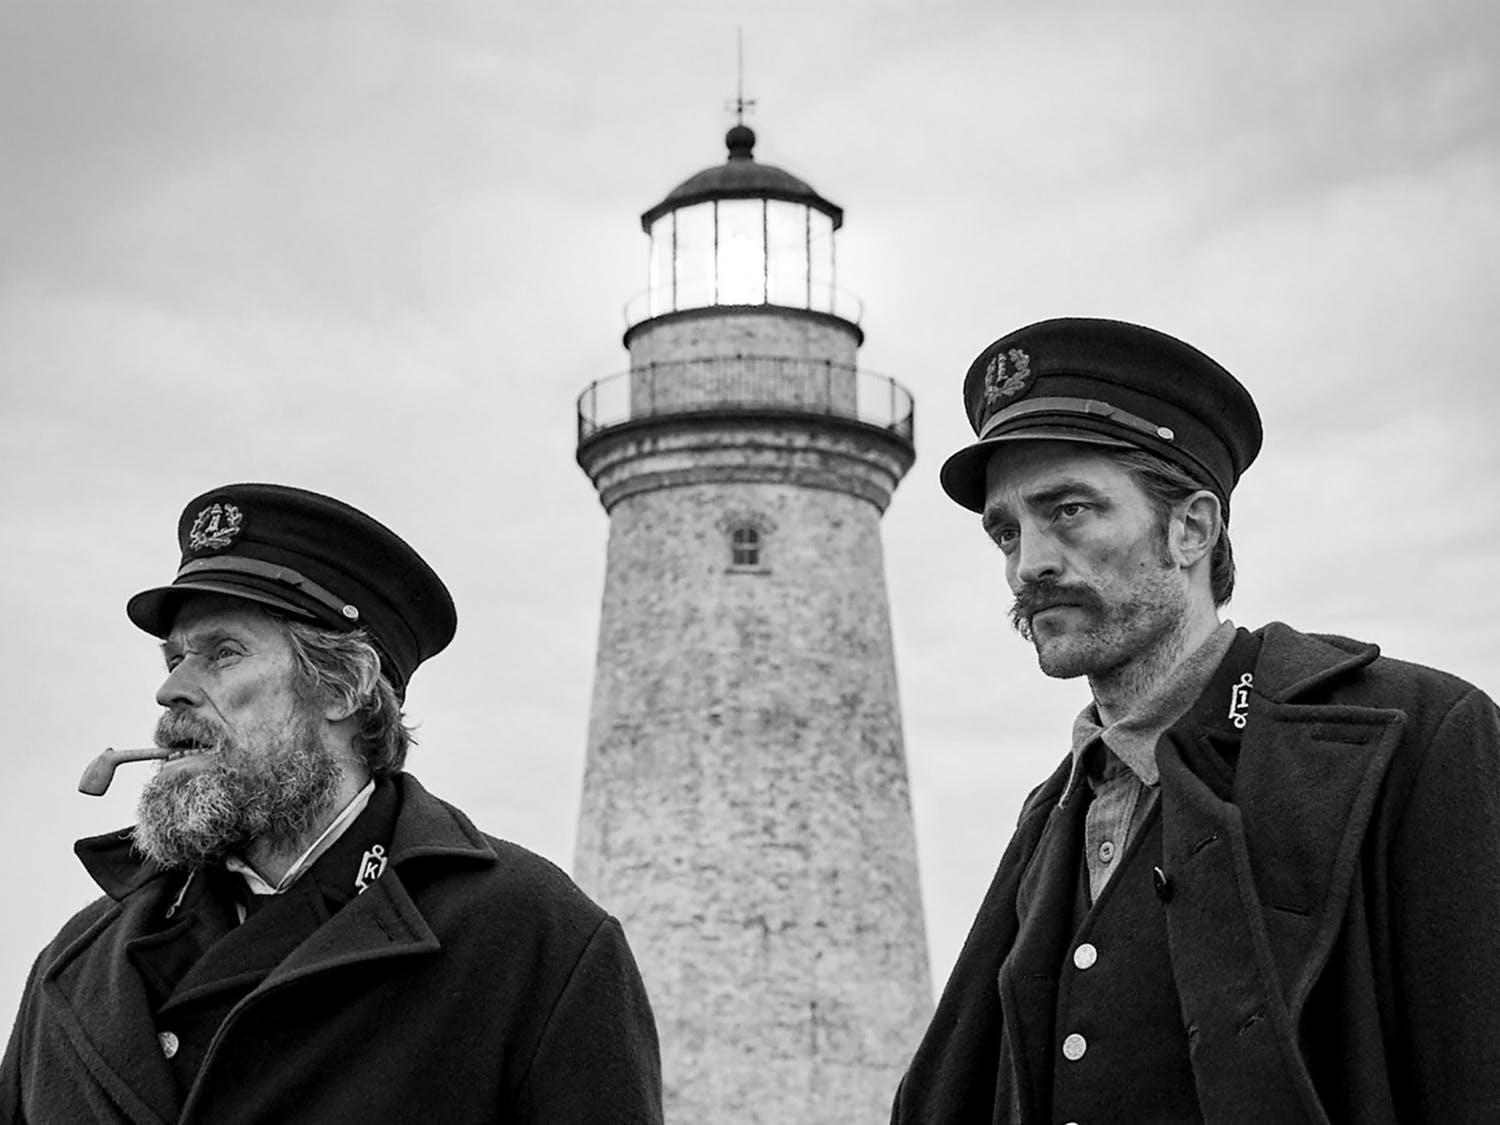 """The Lighthouse"" is a tempest in a bottle, a carefully calibrated psychological thriller posing as if it is out of control."